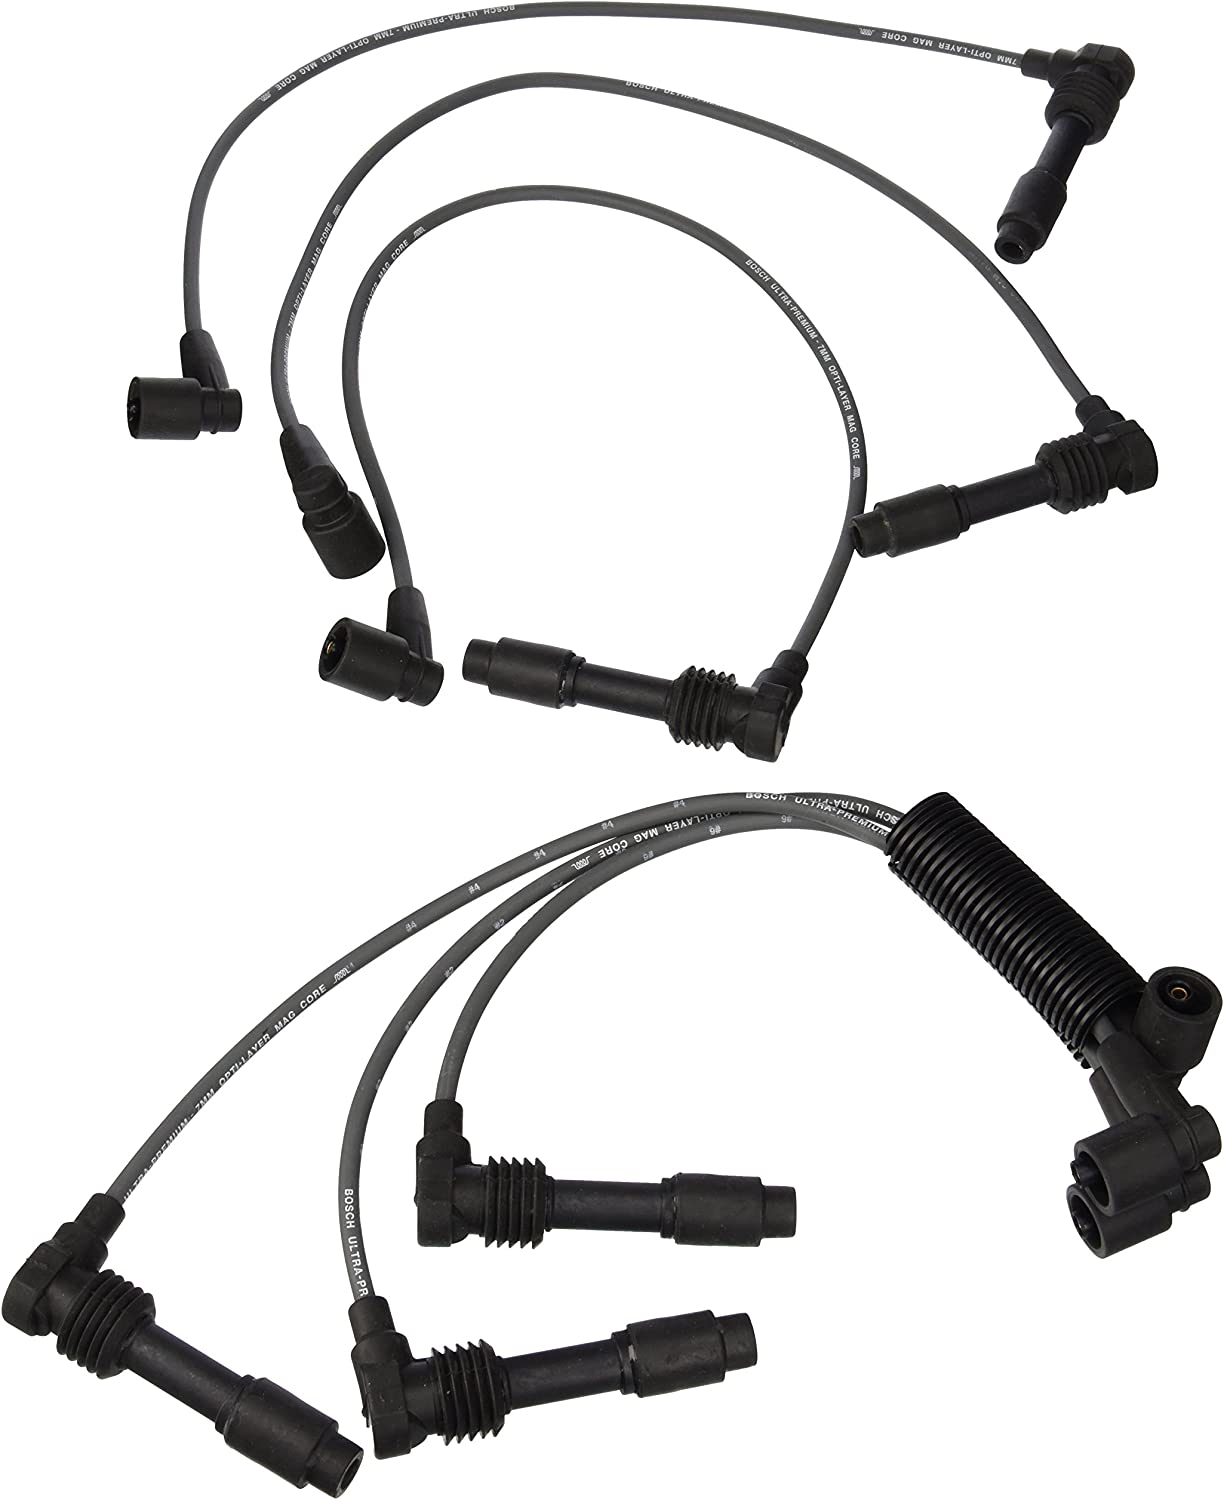 Bosch 09104 Premium Spark Wire NEW before selling Free shipping New Plug Set